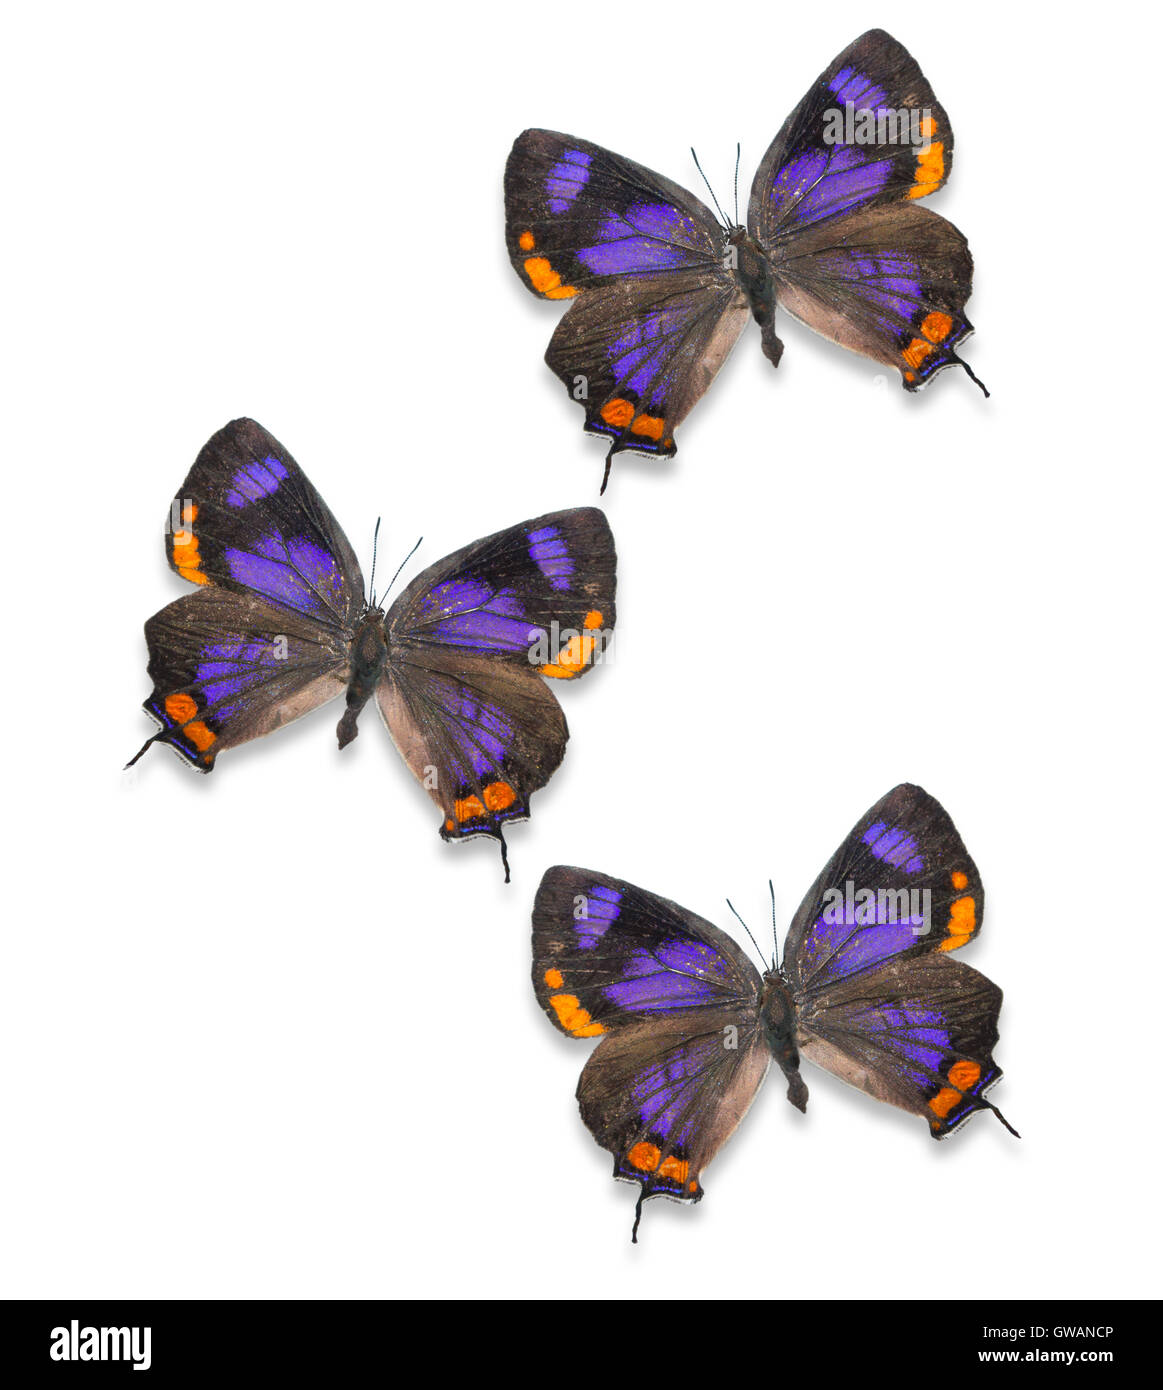 Pinned and spread cutout Colorado Hairstreak butterflies (Hypaurotis crysalus) on a white background - Stock Image